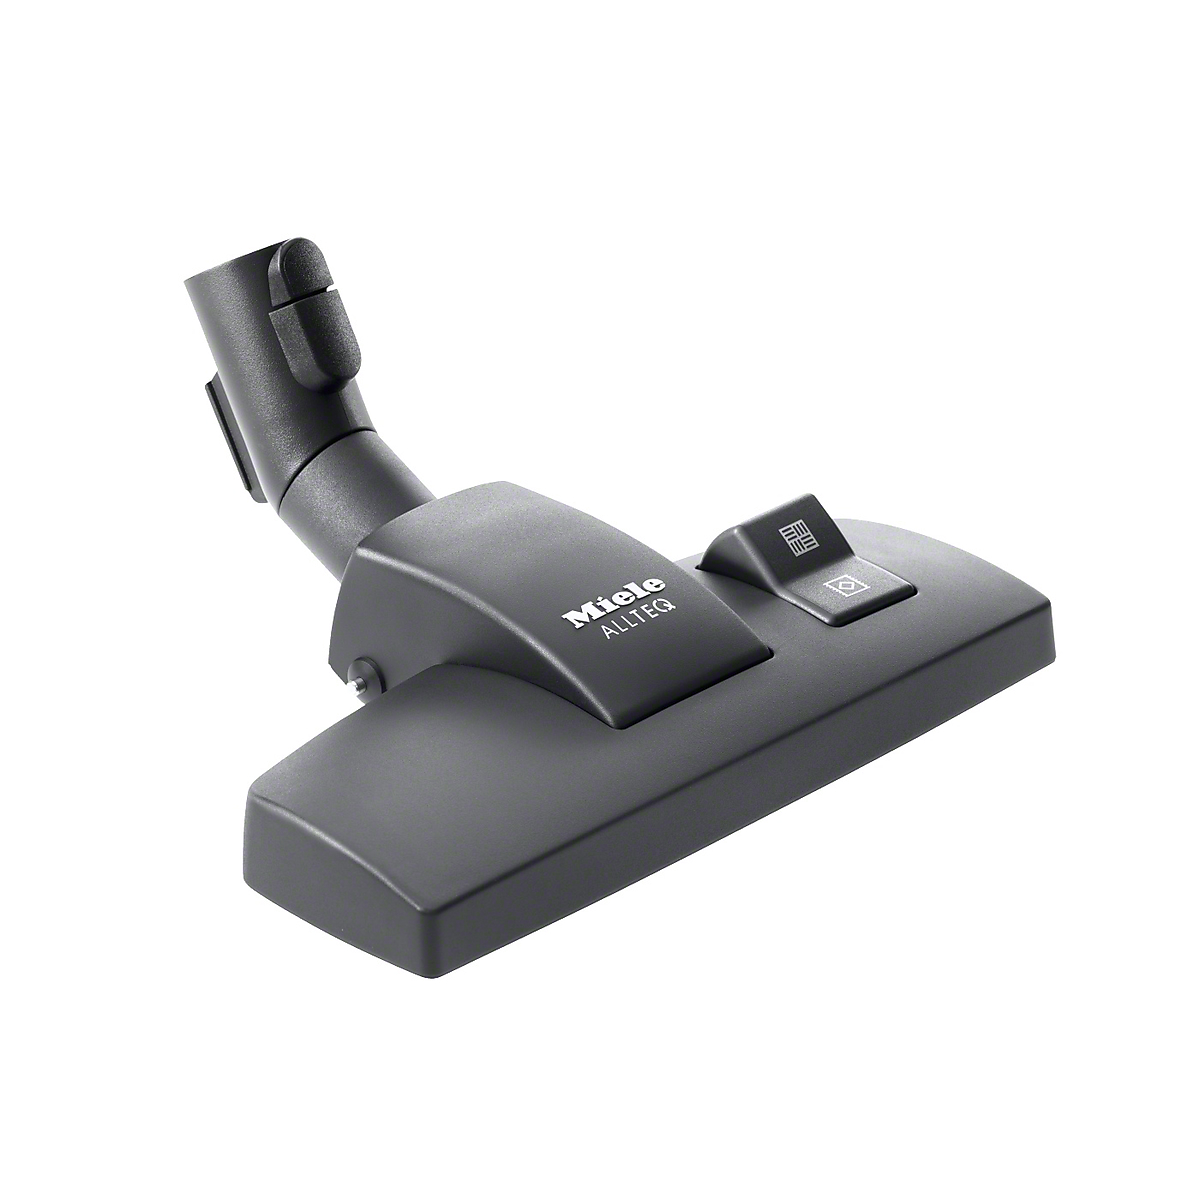 Model: SBD 285-3 | AllTeQ - floorheadfor vacuuming hard floors and carpets thanks to the retractable bristle strip.